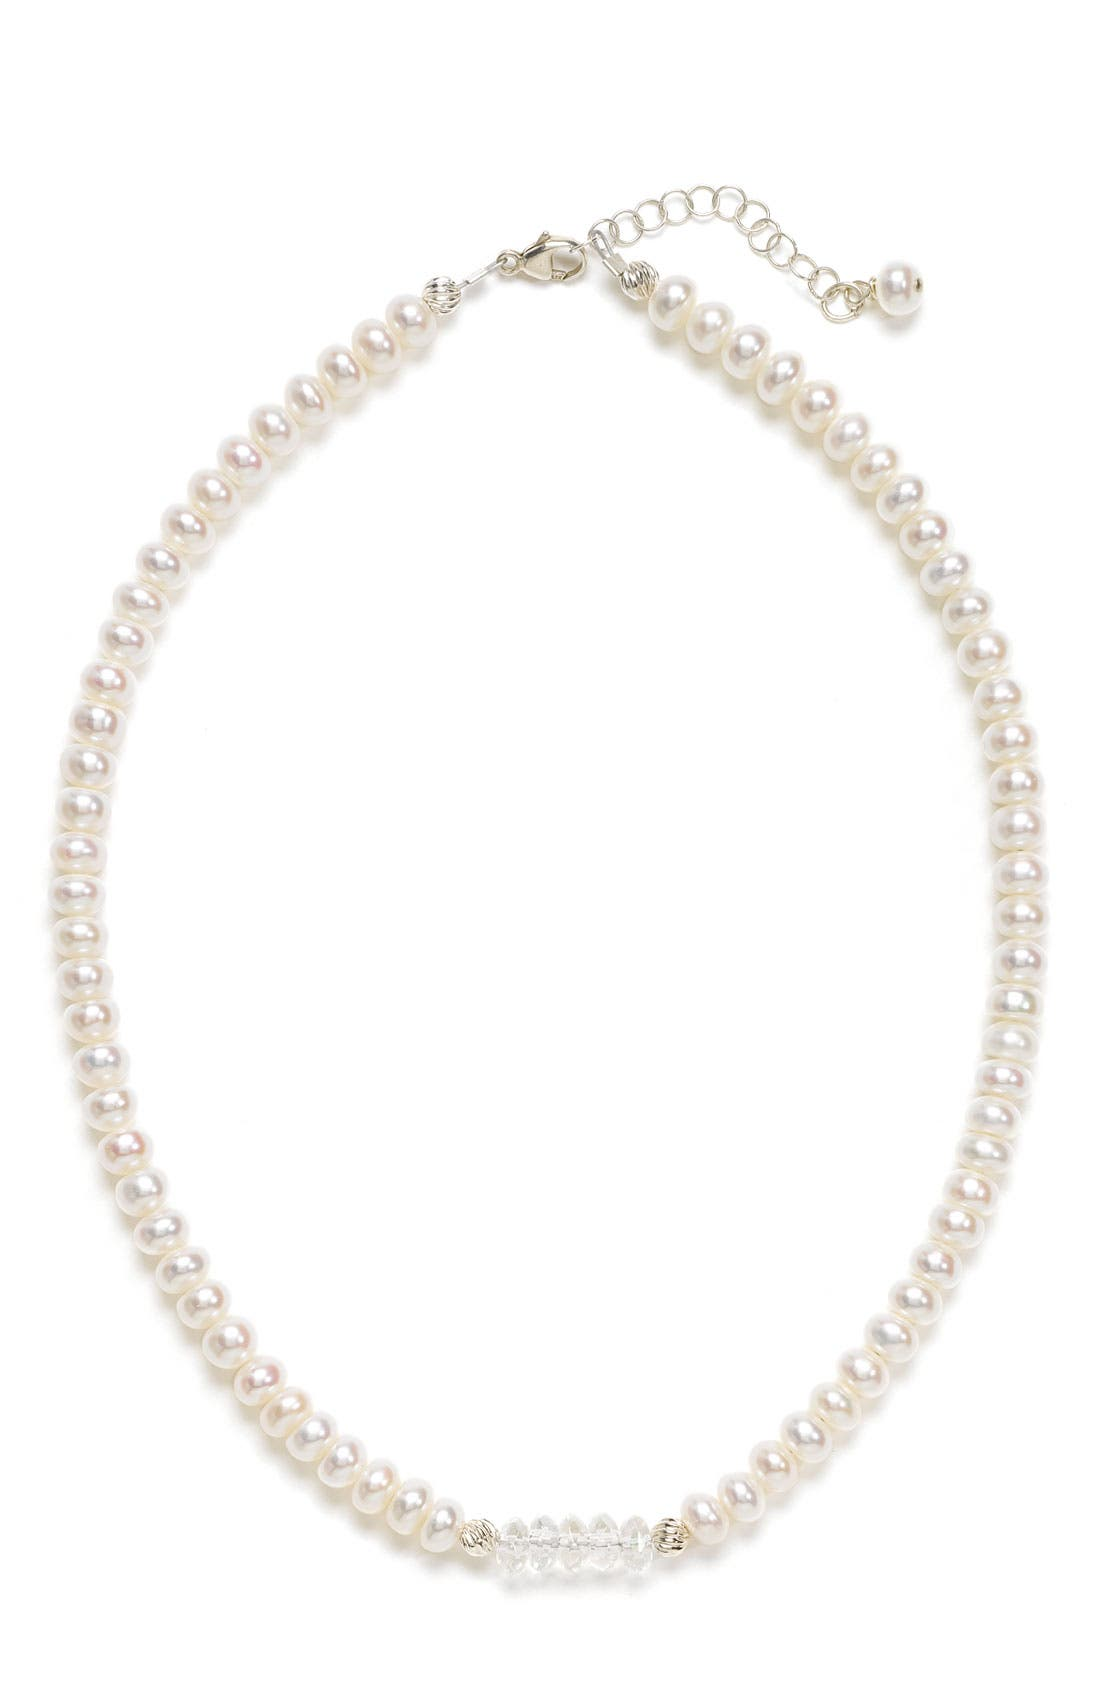 Main Image - Abela Designs Freshwater Pearl Necklace (Girls)